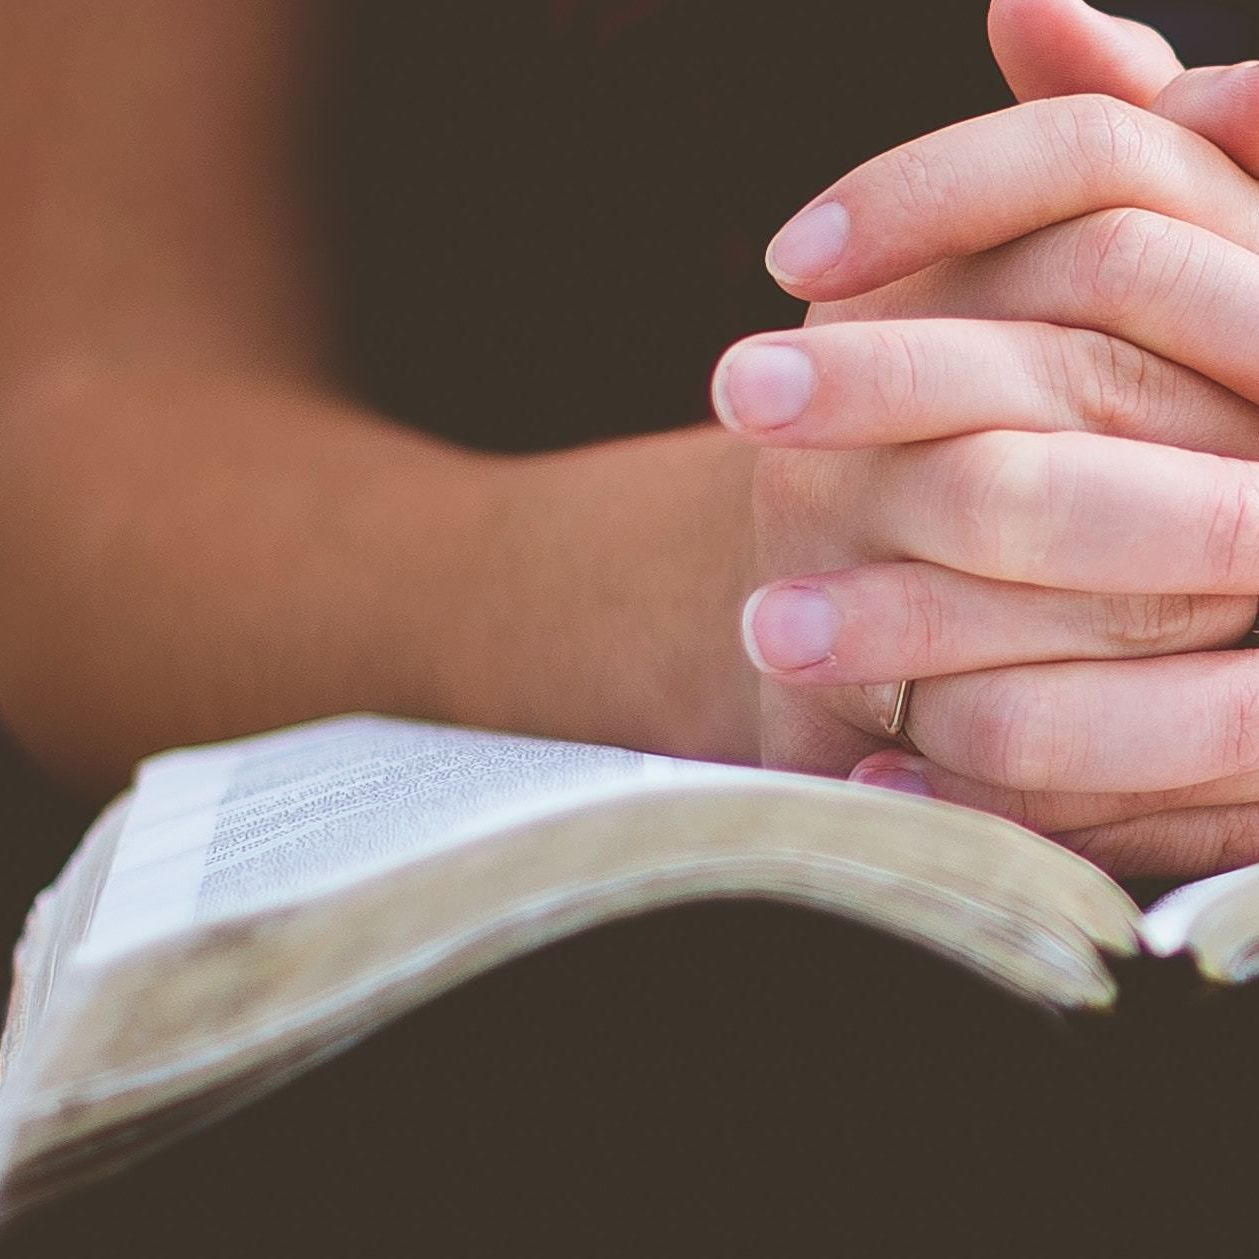 Hope for a new life in Christ